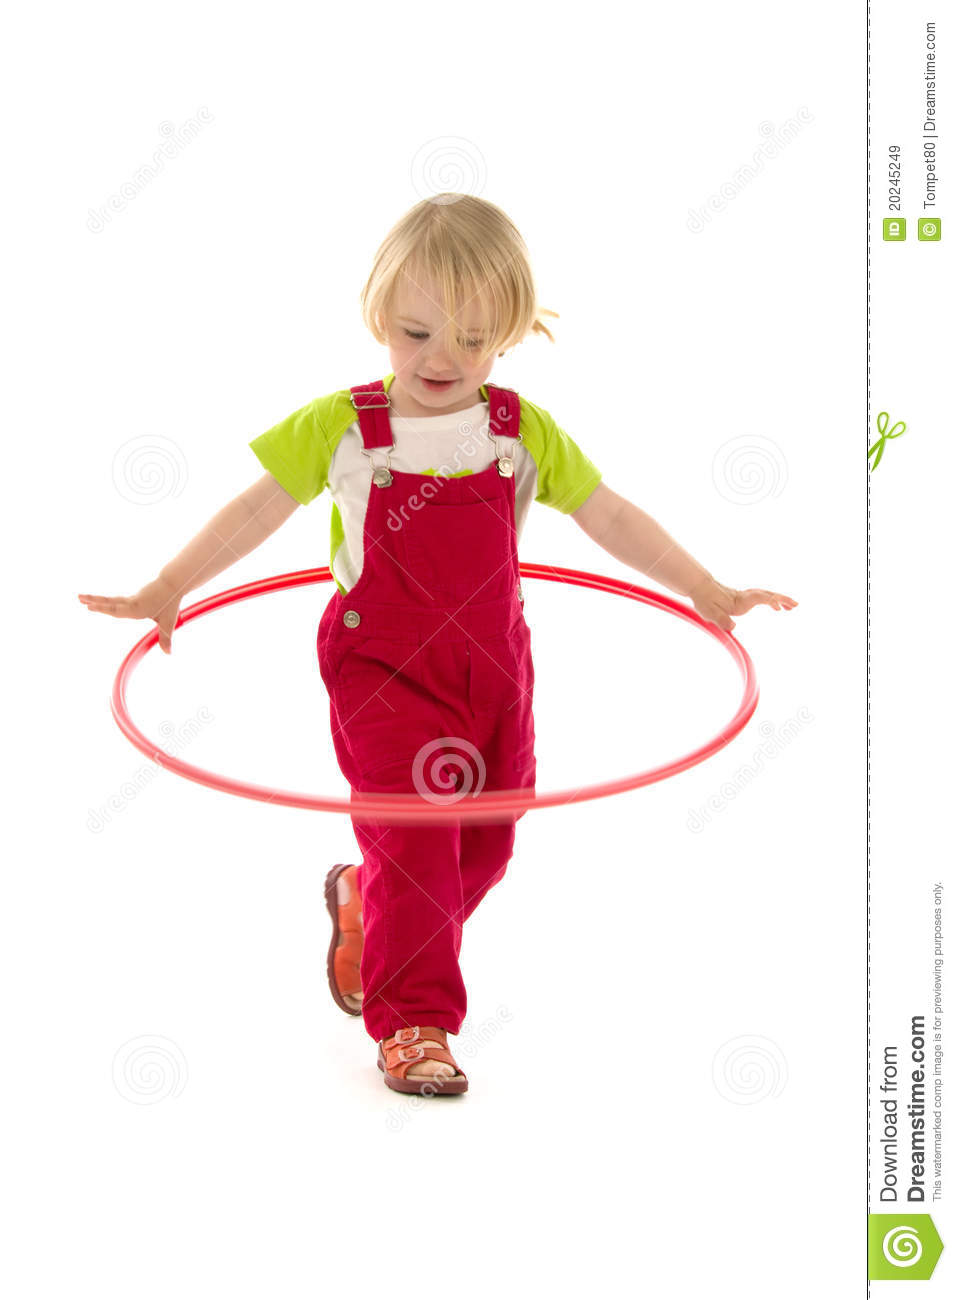 child with hula hoop stock image image of isolated. Black Bedroom Furniture Sets. Home Design Ideas